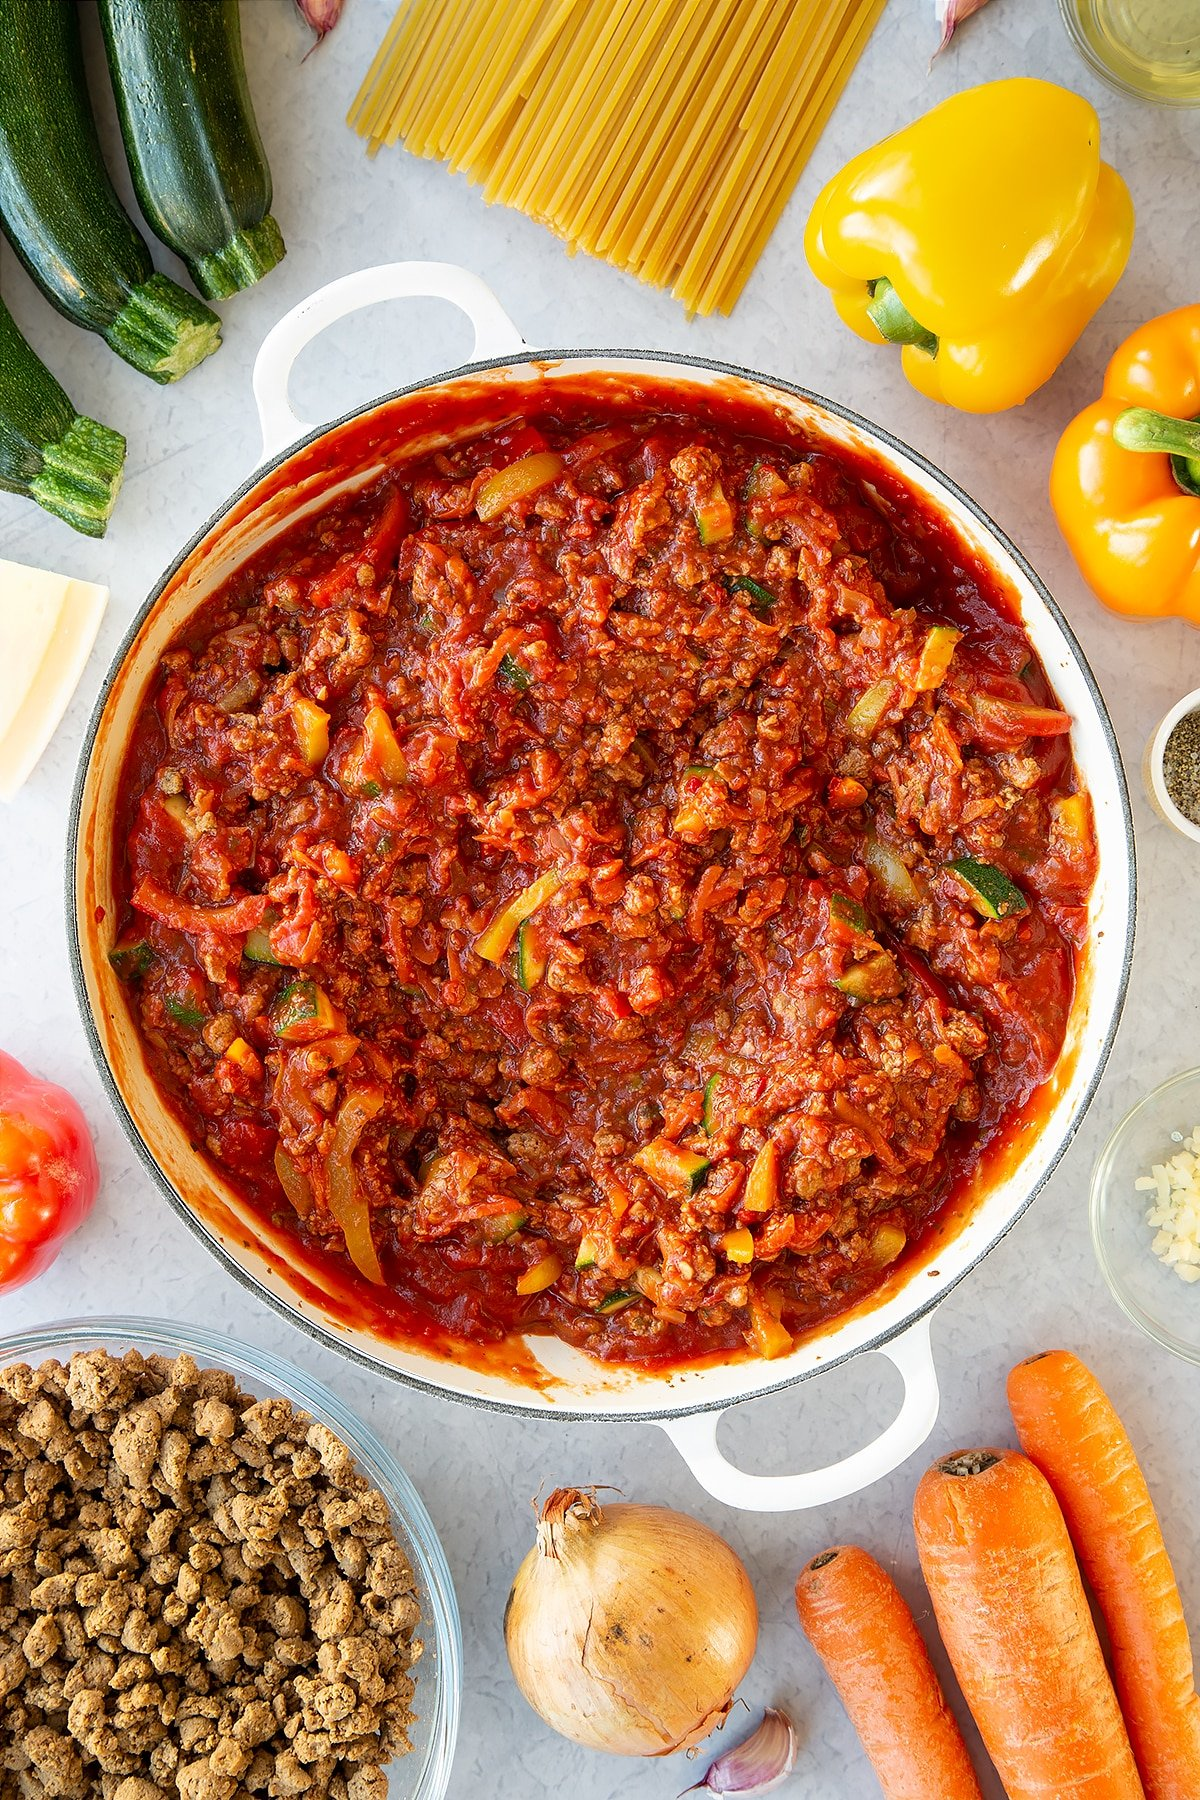 Veggie mince, garlic, onion, courgette, carrot, peppers and pasta sauce in a large pan. Ingredients to make one pot vegan bolognese surround the pan.